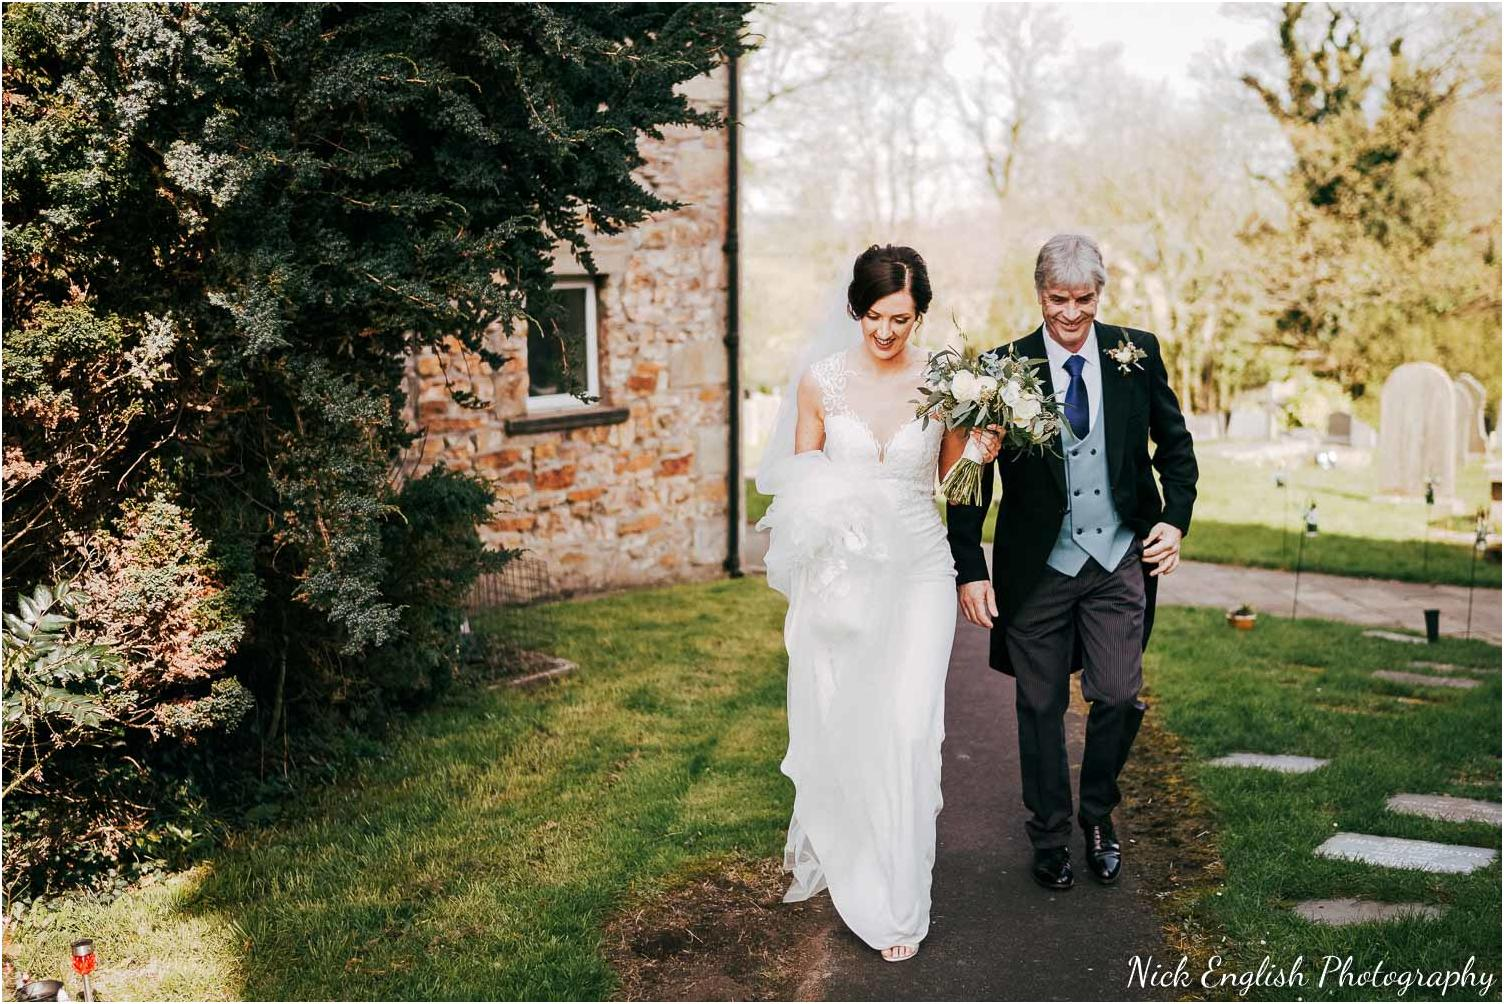 Mitton_Hall_Wedding_Photographer-33.jpg